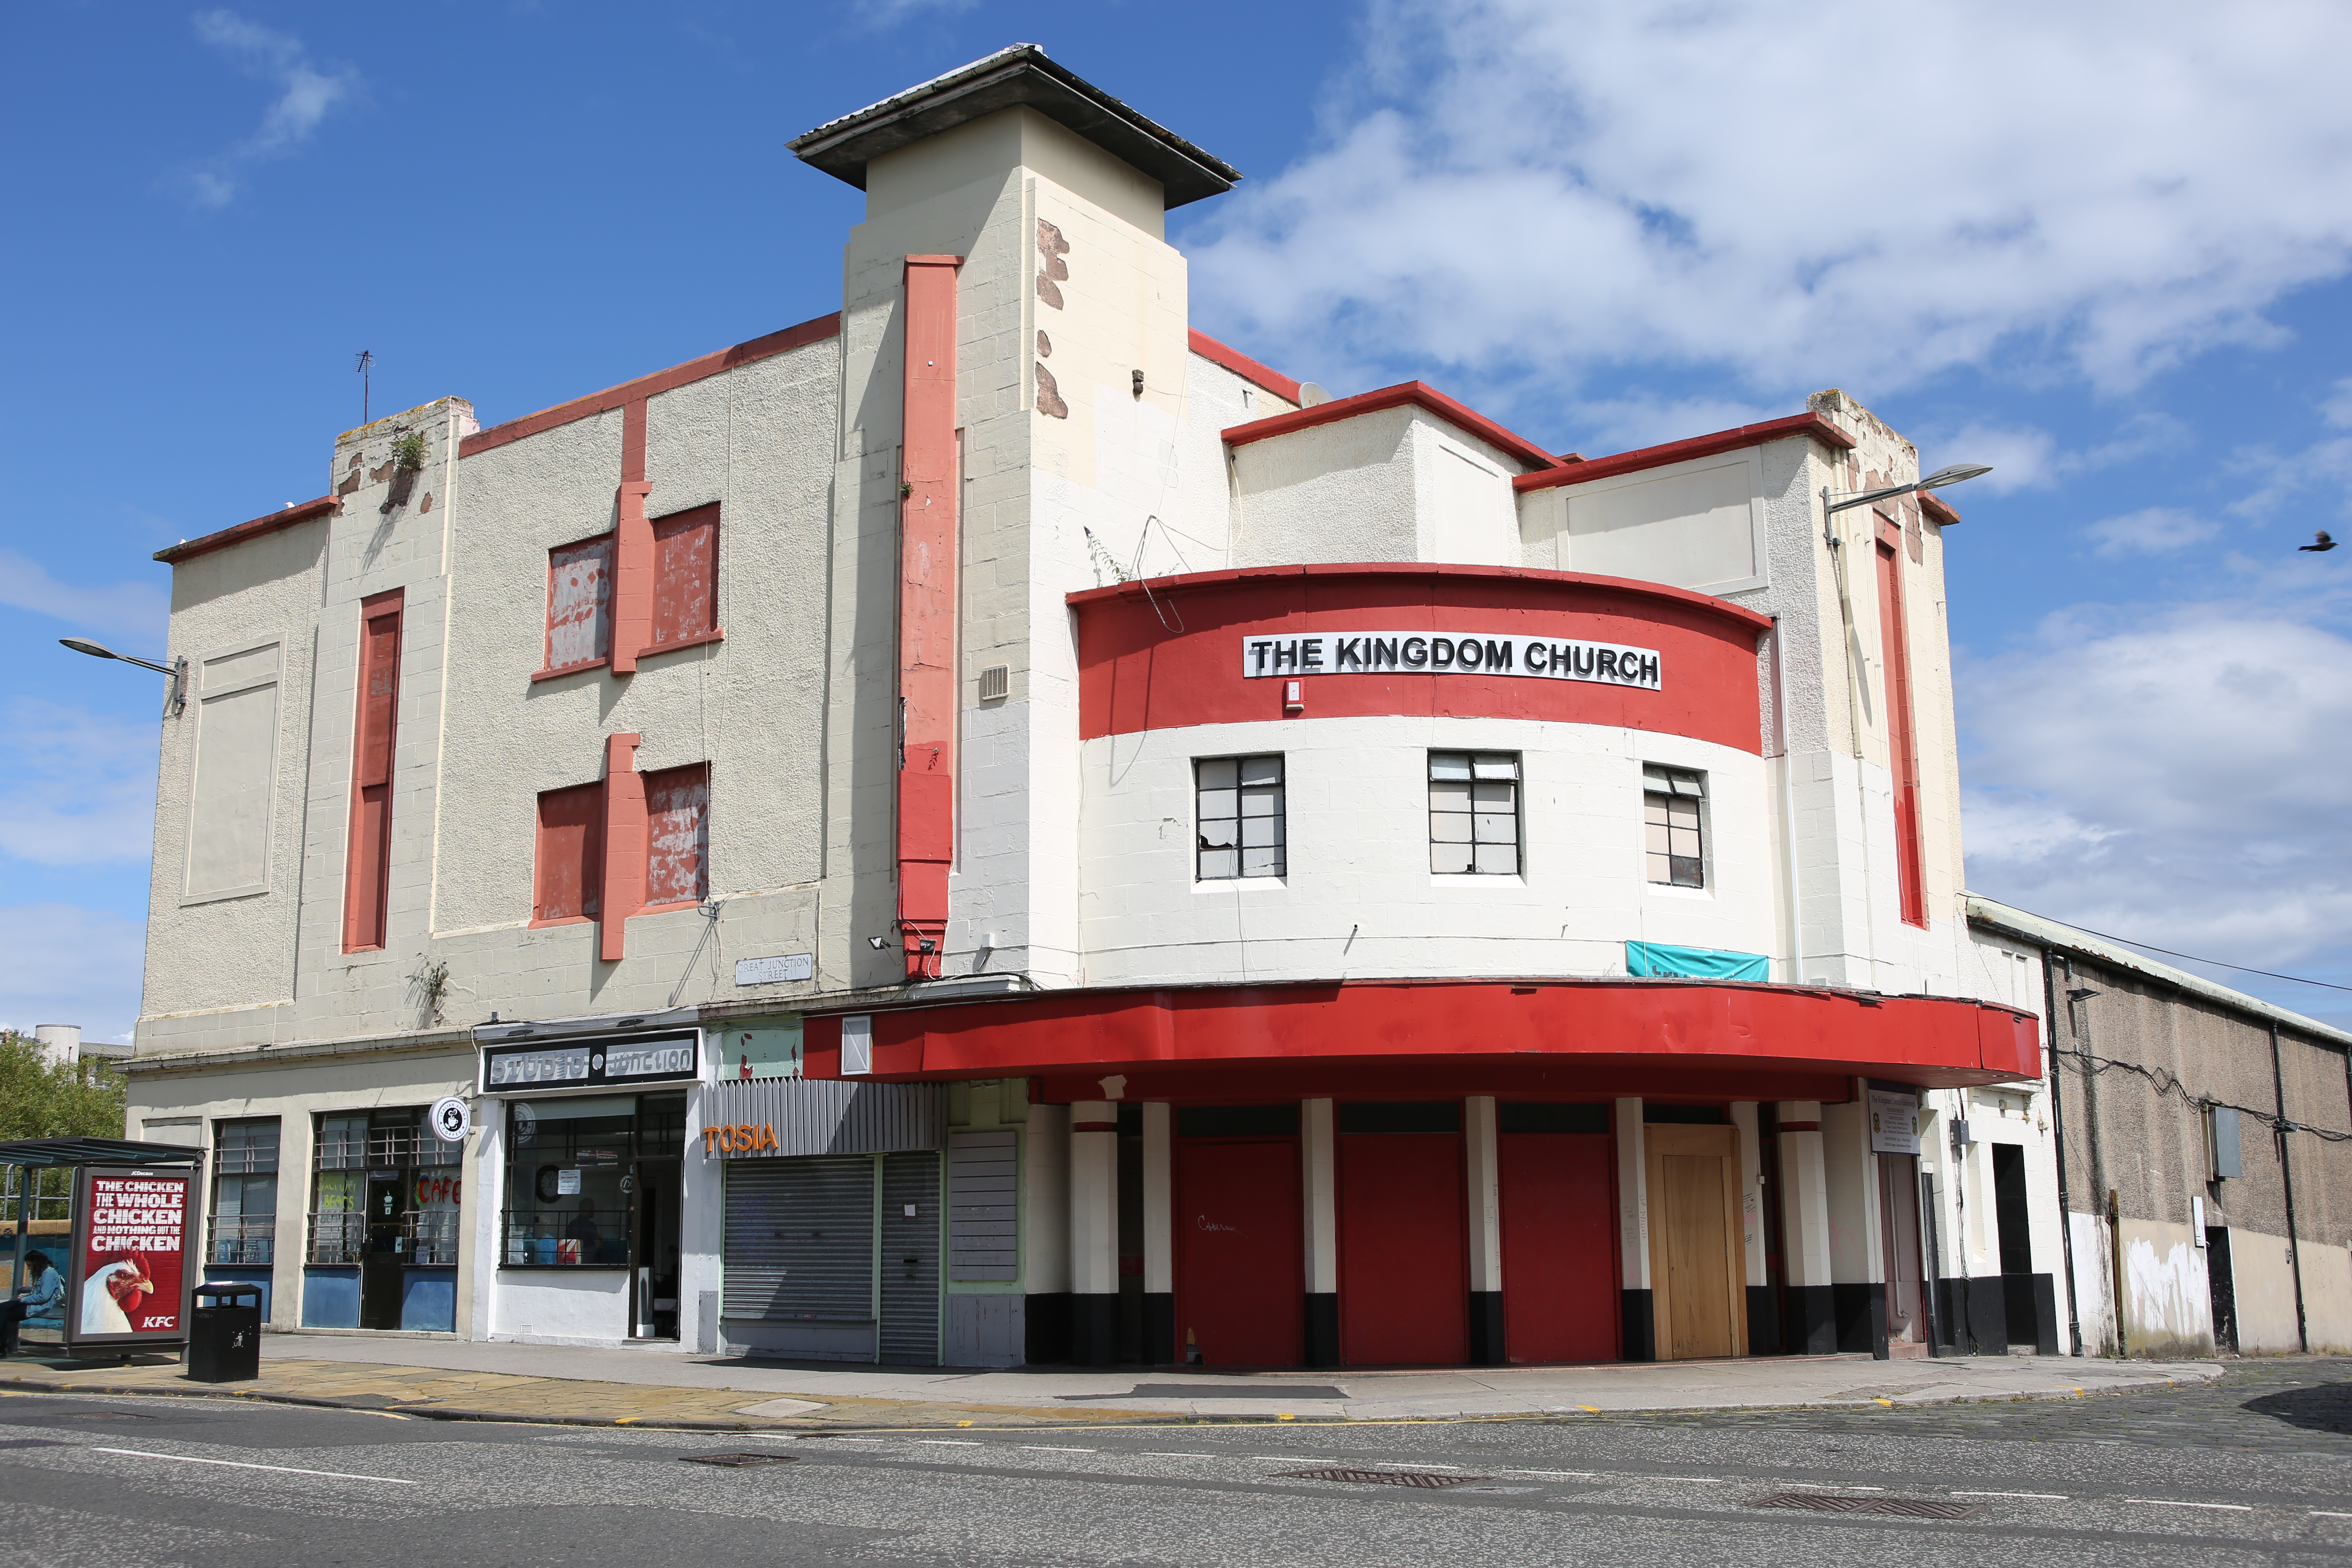 flats plan for former art deco cinema daily business